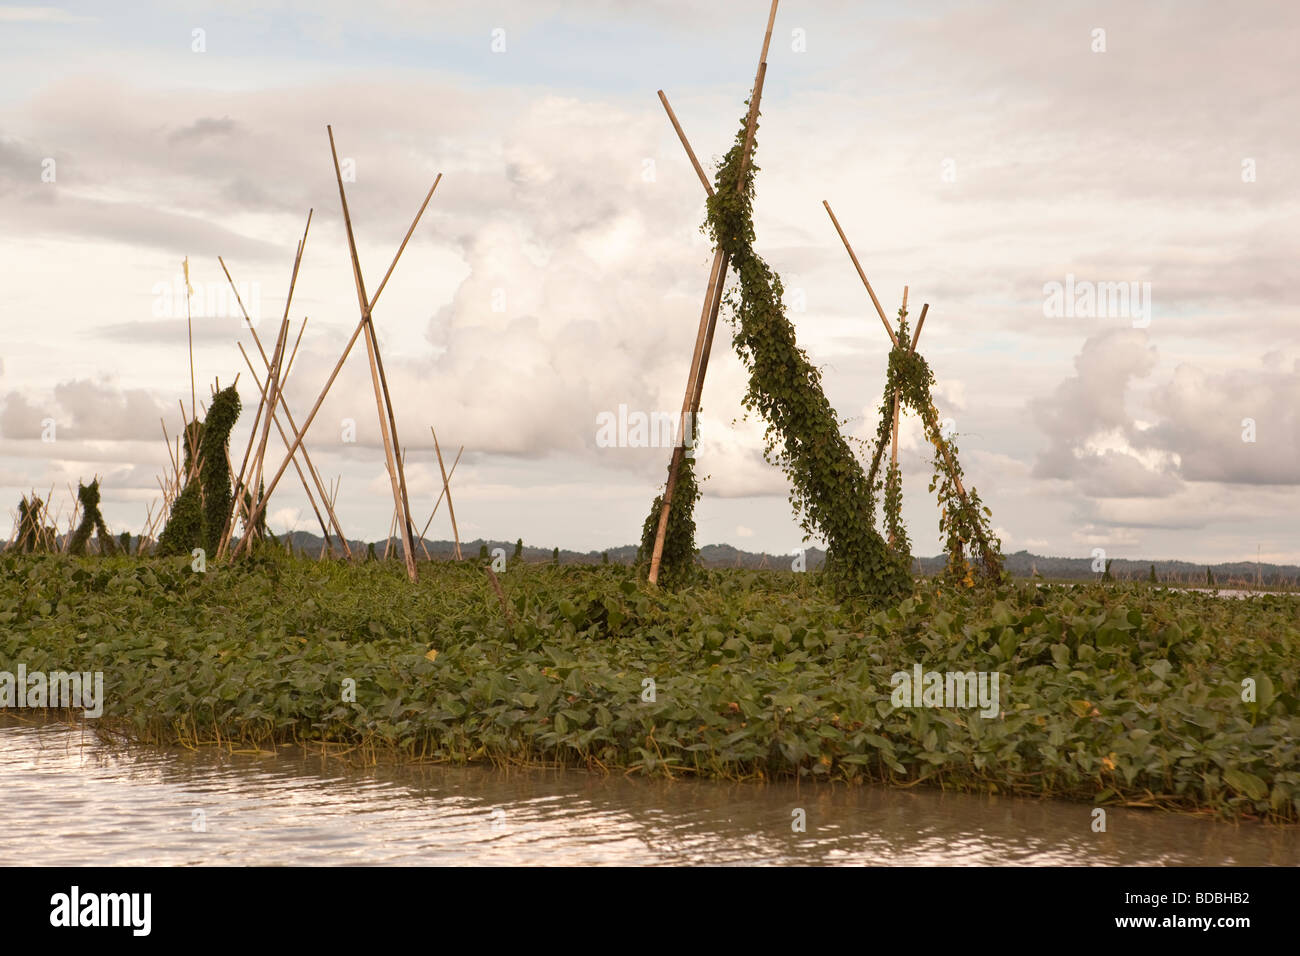 Indonesia Sulawesi Sengkang Danaue Tempe Lake fishing industry mats of water hyacinth anchored to form habitat for - Stock Image